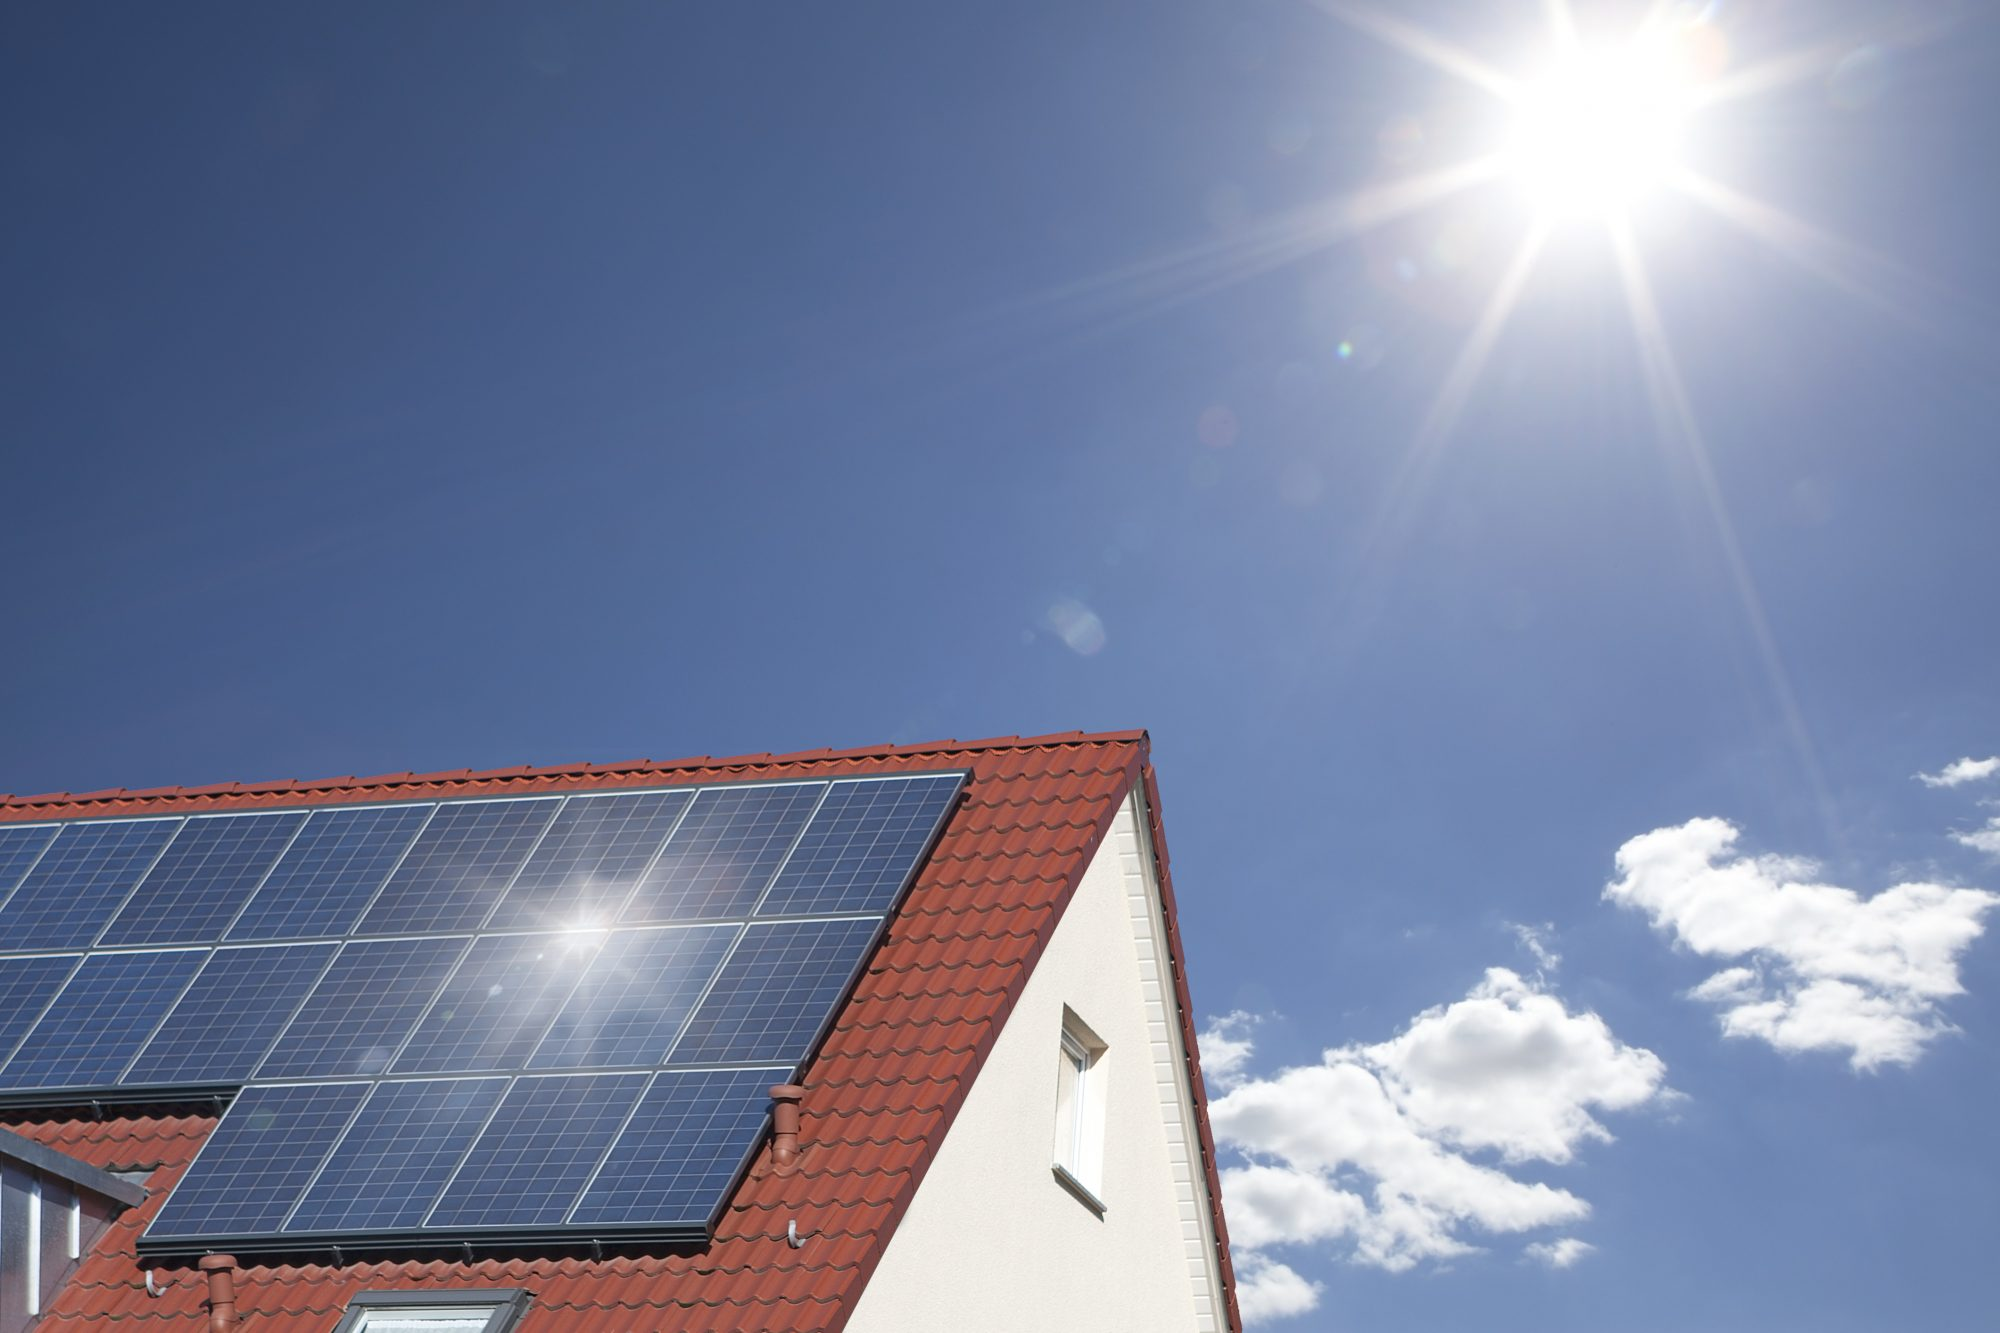 Alliance urges Government to reconsider Green Homes Grant cut